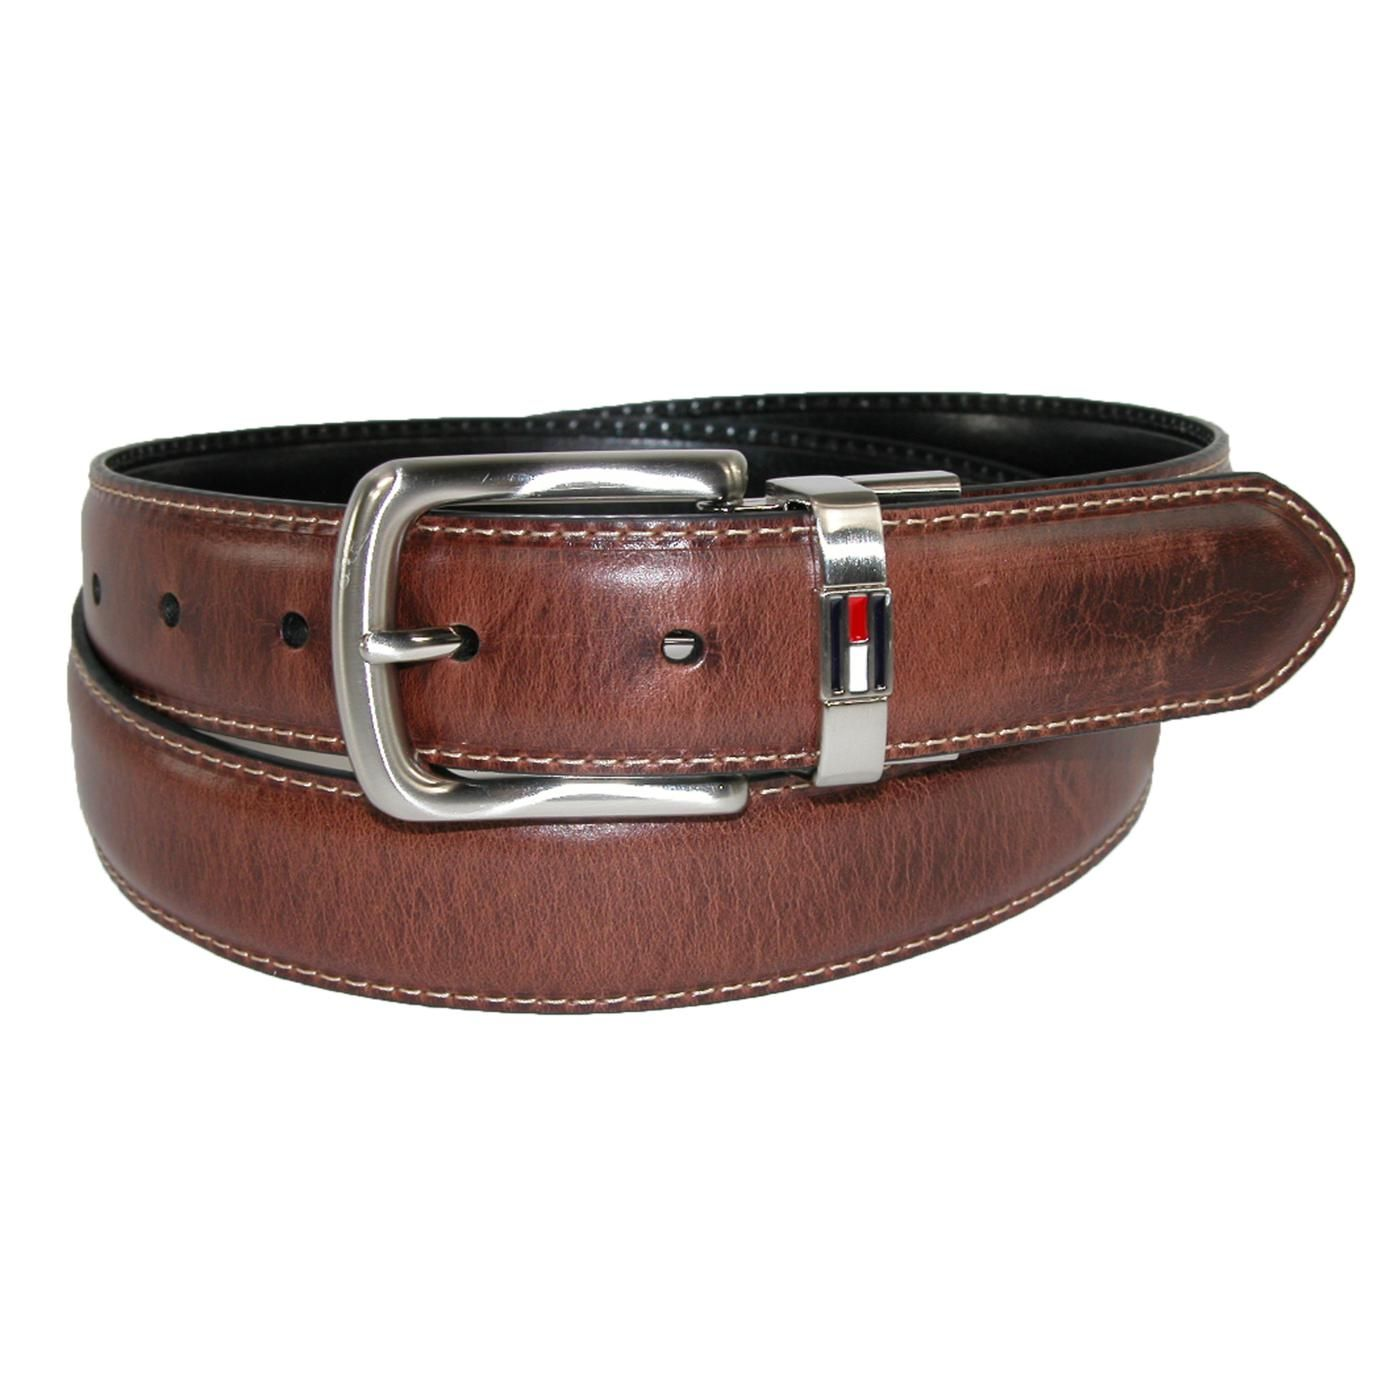 Versatile for casual or dress wear, this belt is genuine leather and 1.25 inches wide. The twist buckle is polished silver finished and the matching keeper features the Tommy Hilfiger logo. To reverse the belt, simply pull up on the buckle and twist. The brown side has a casual burnished antiqued look and the black side is smooth matte finish.